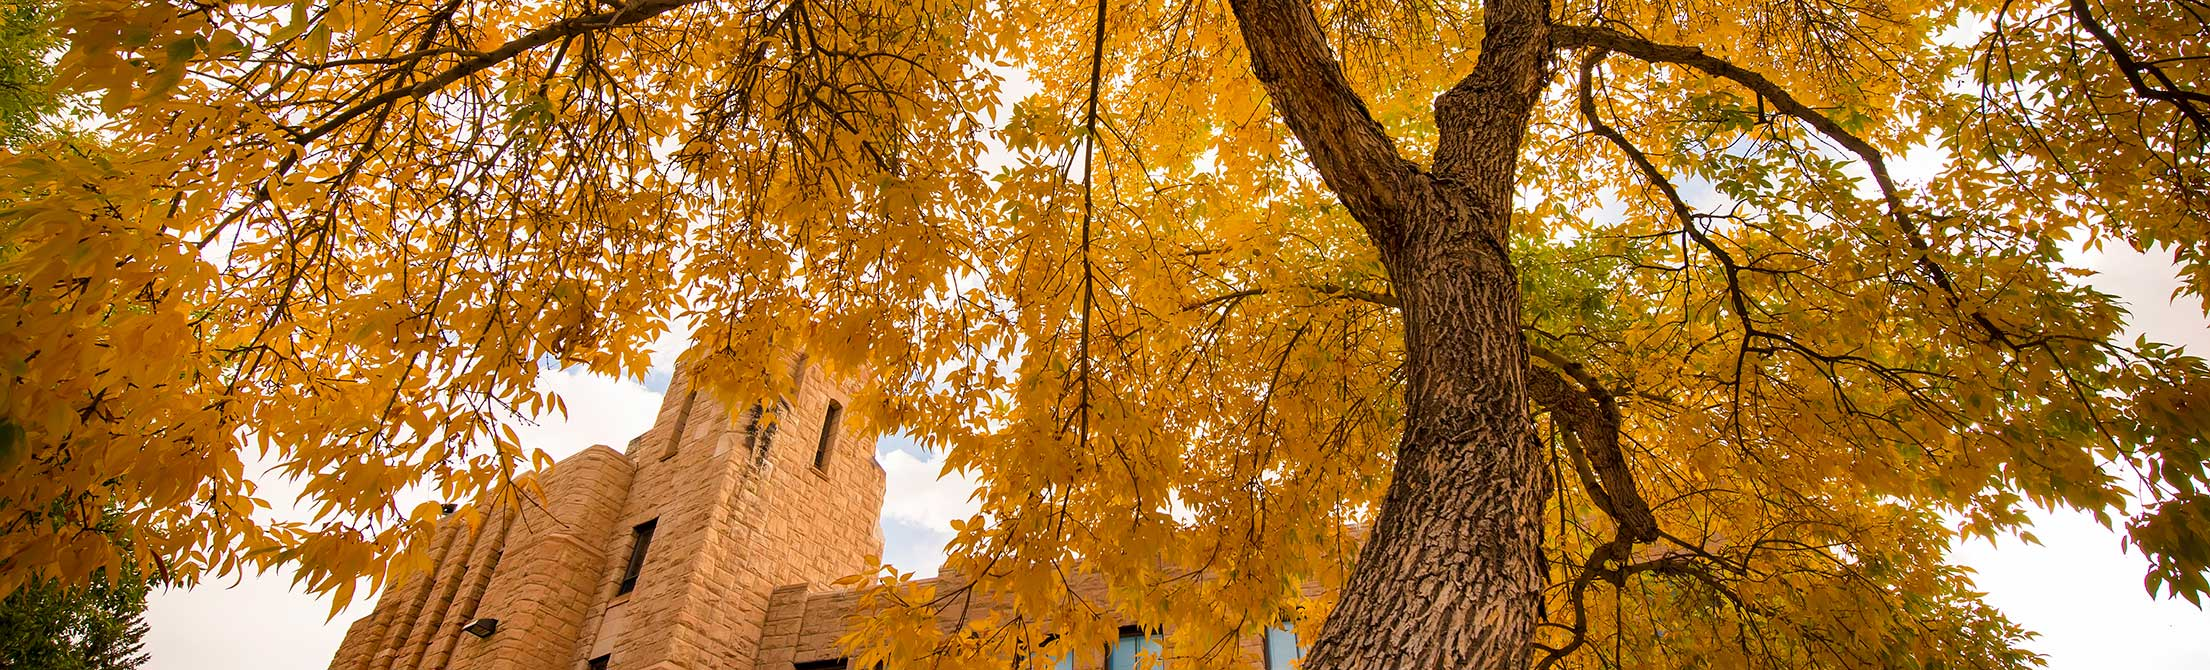 tree by Wyoming Union in the fall